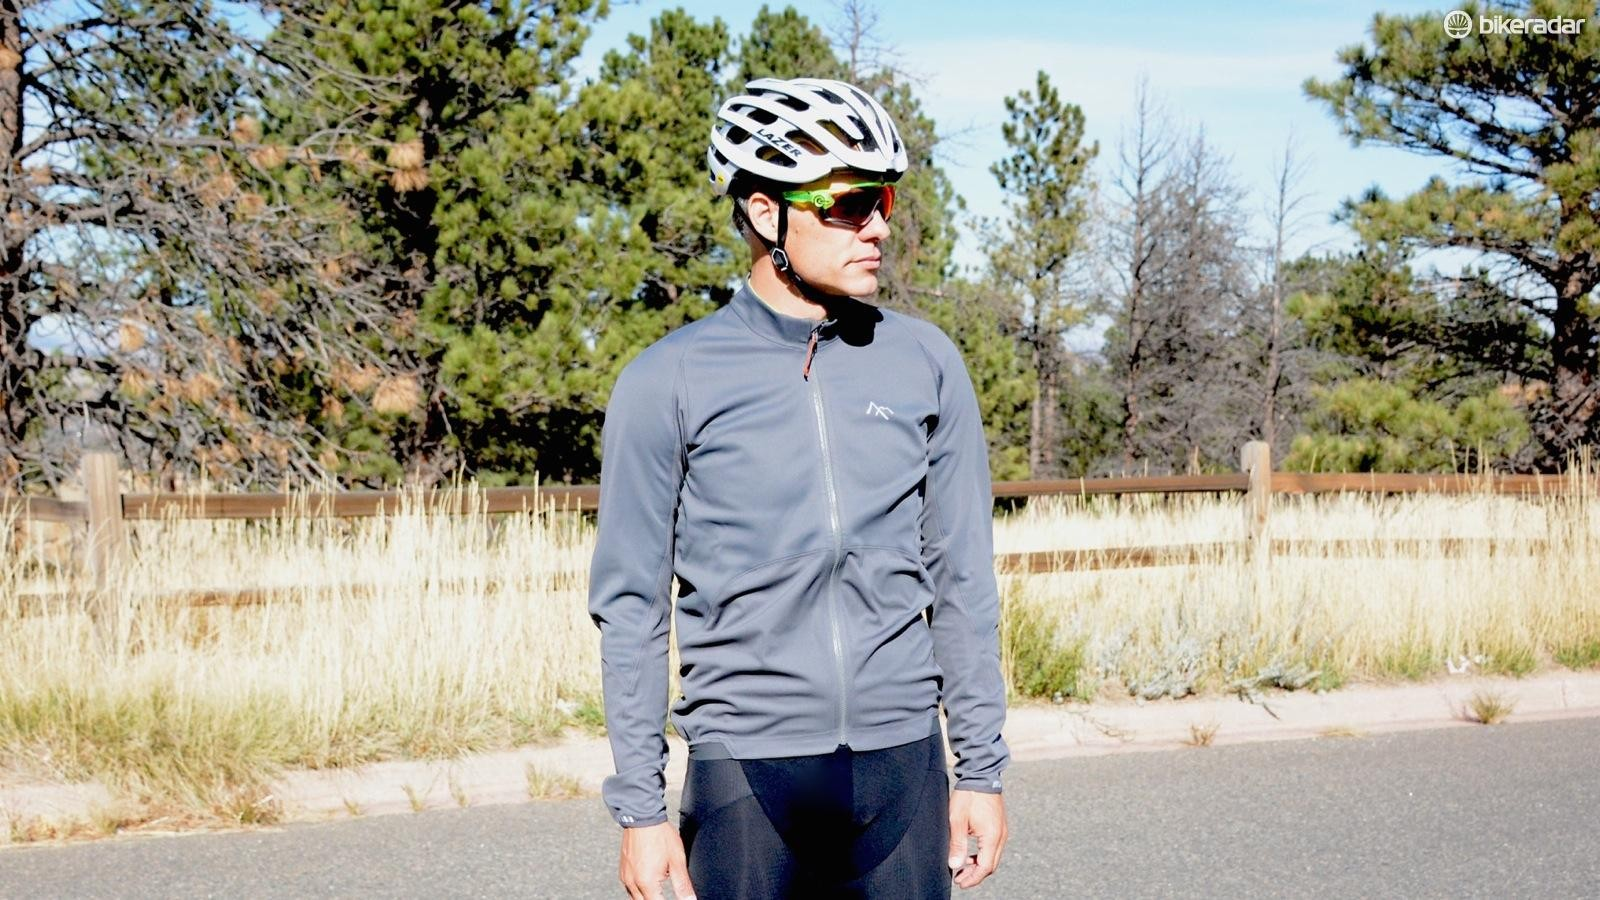 The Strategy Jacket with a Gore WindStopper exterior has a looser fit